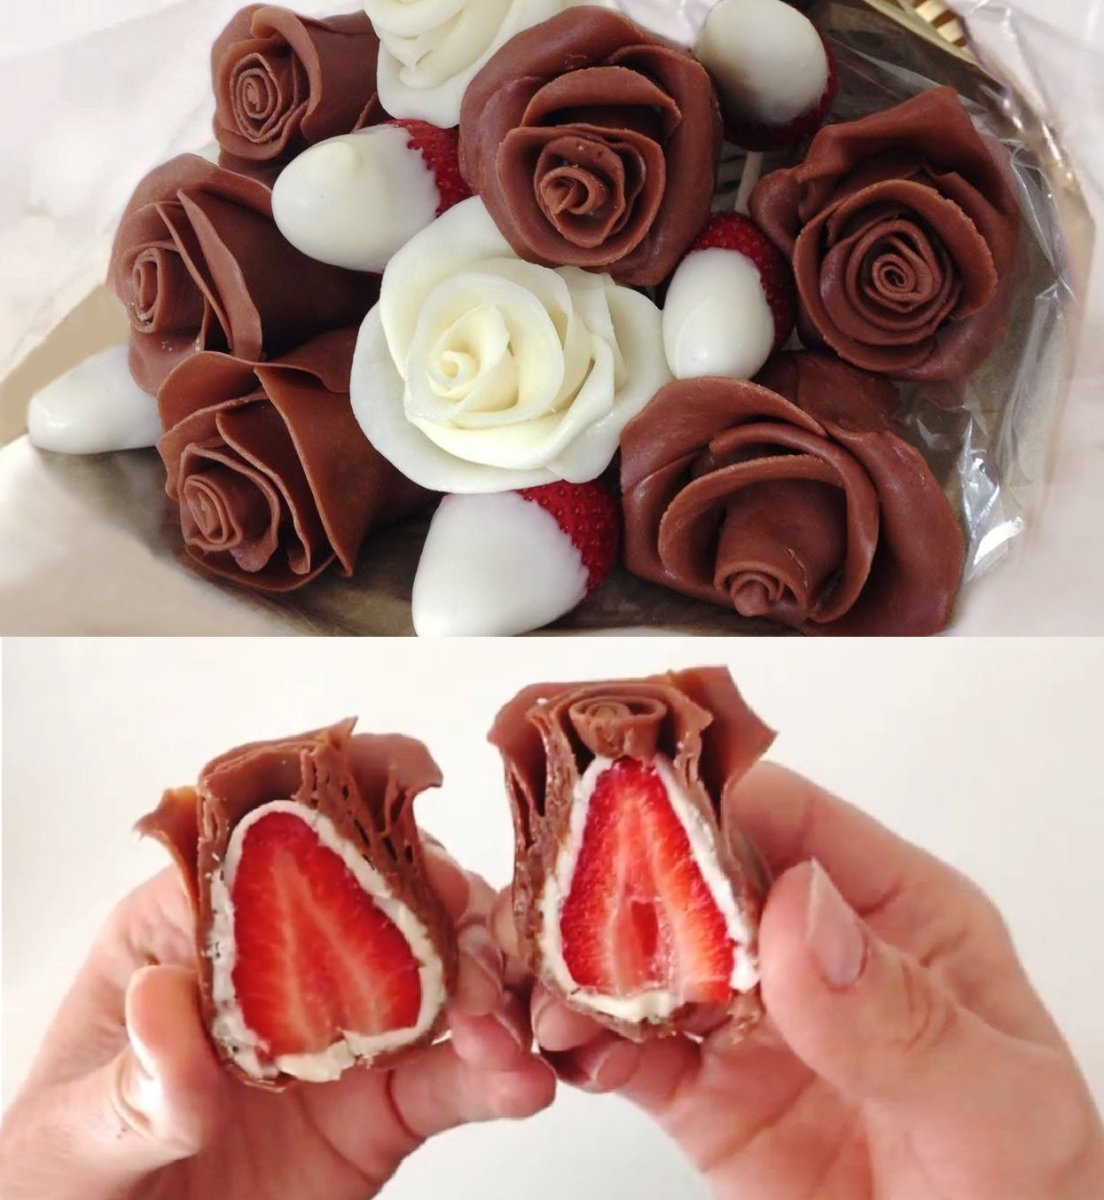 Edible bouquet ideas for mother s day for Homemade edible mother s day gifts